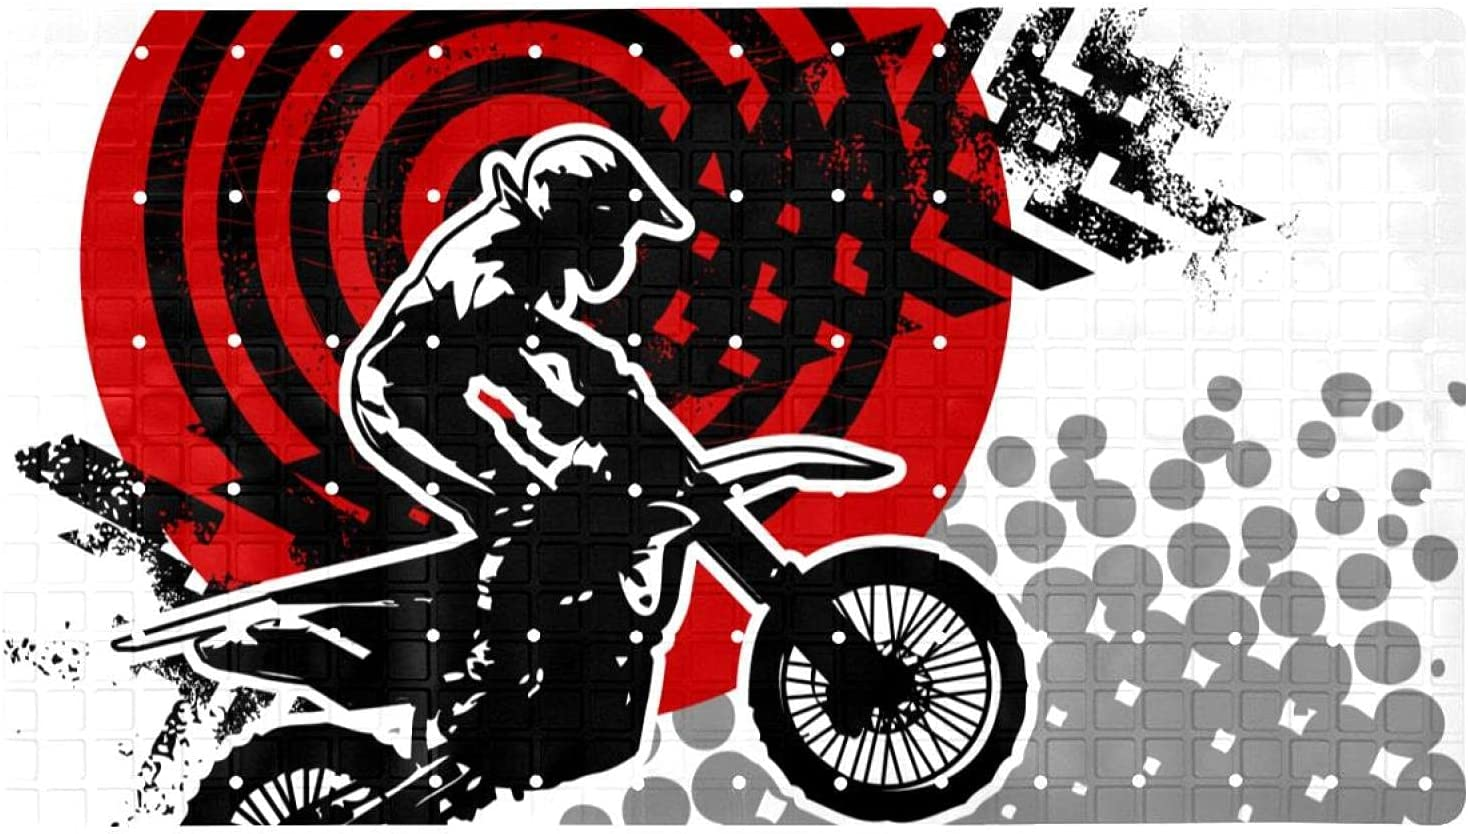 Bath Tub Shower Mat 15.7x27.9 Motocross Background Print Free Shipping Cheap Bargain Gift inches Wholesale